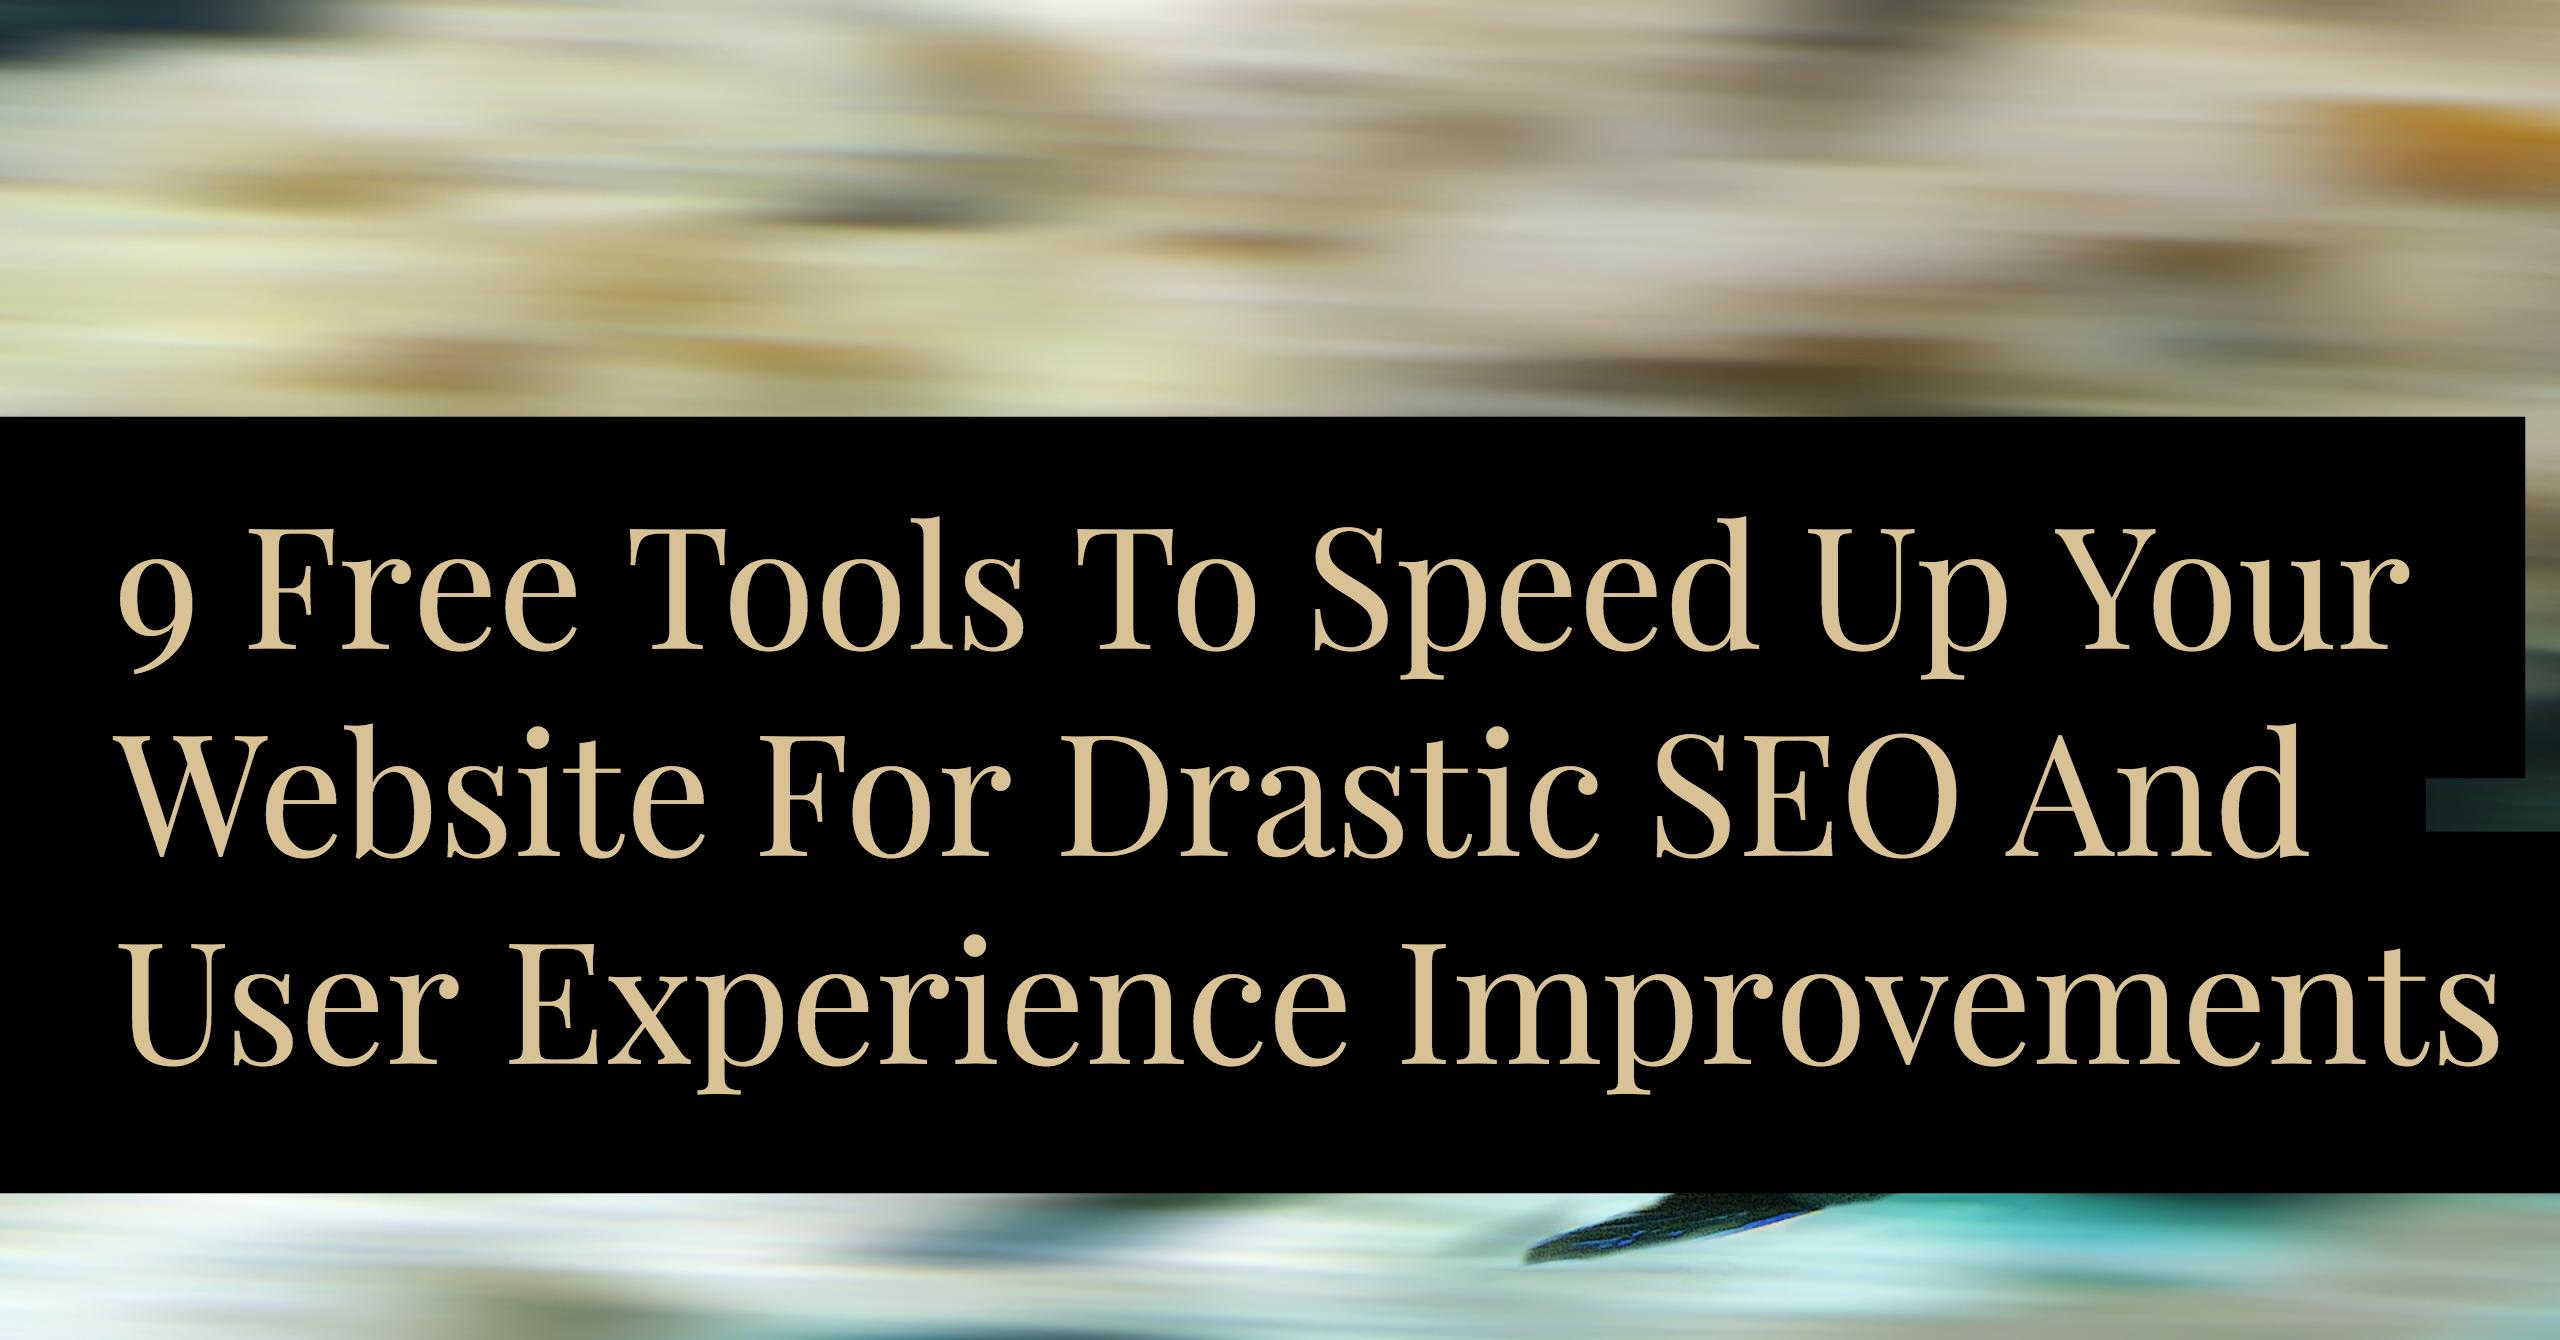 blog.thesocialms.com - Jonathan Gebauer - 9 Free Tools To Improve Your Page Speed For SEO And User Experience